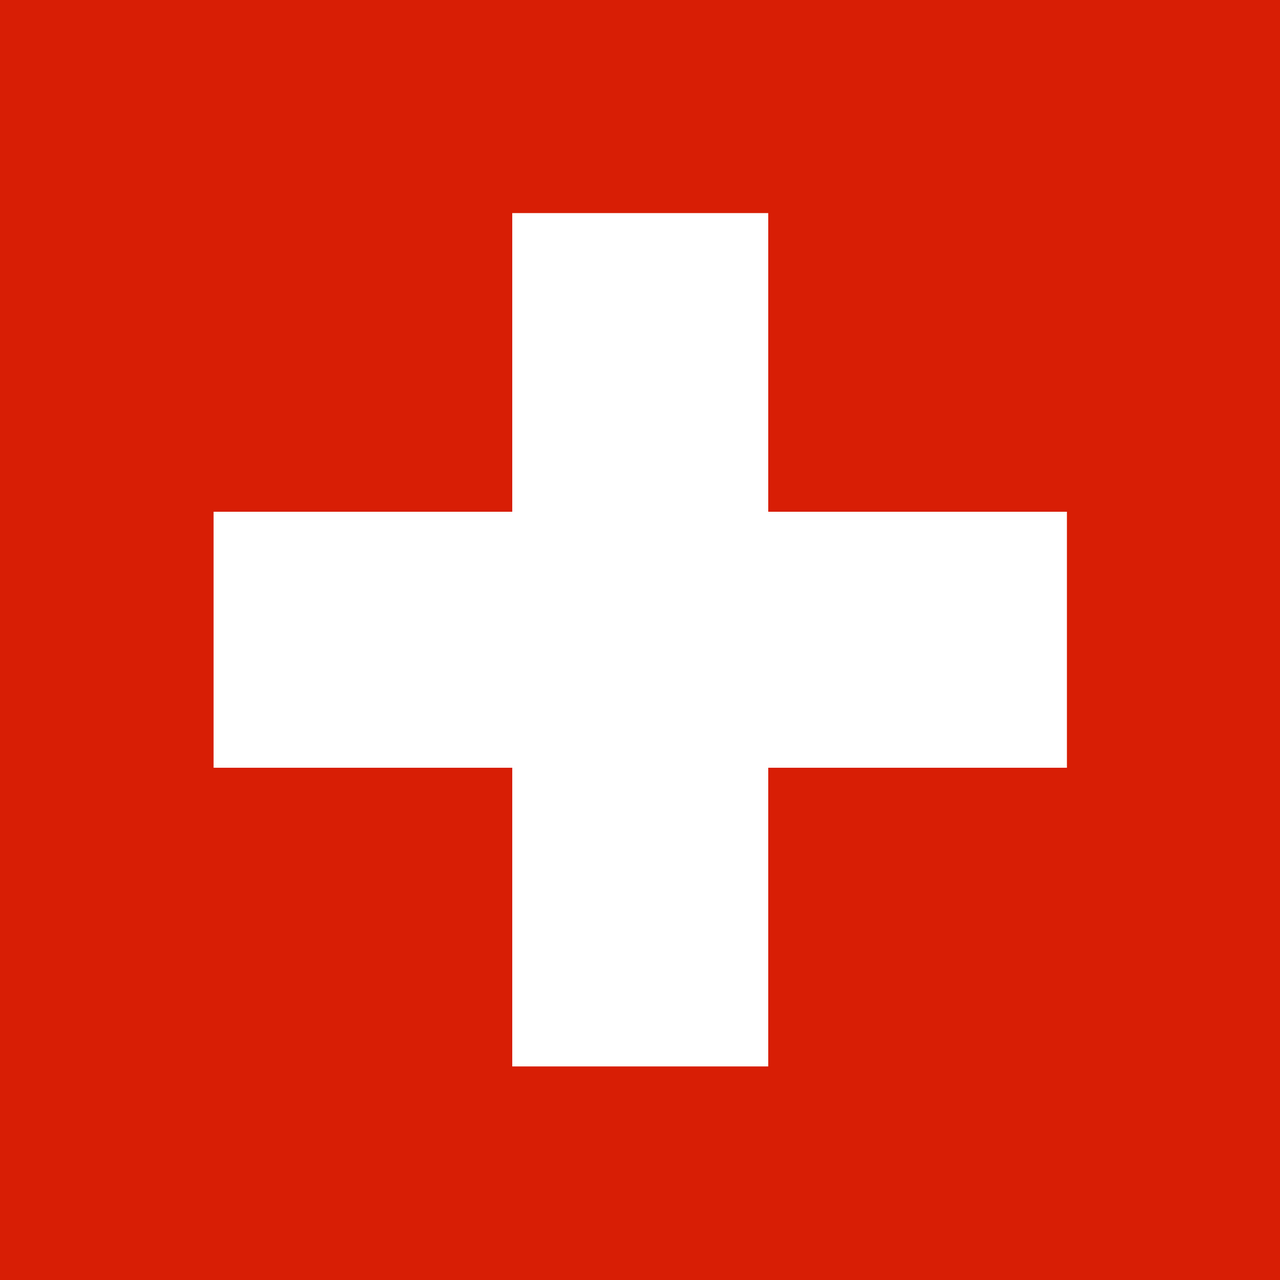 Swiss filmproduction company